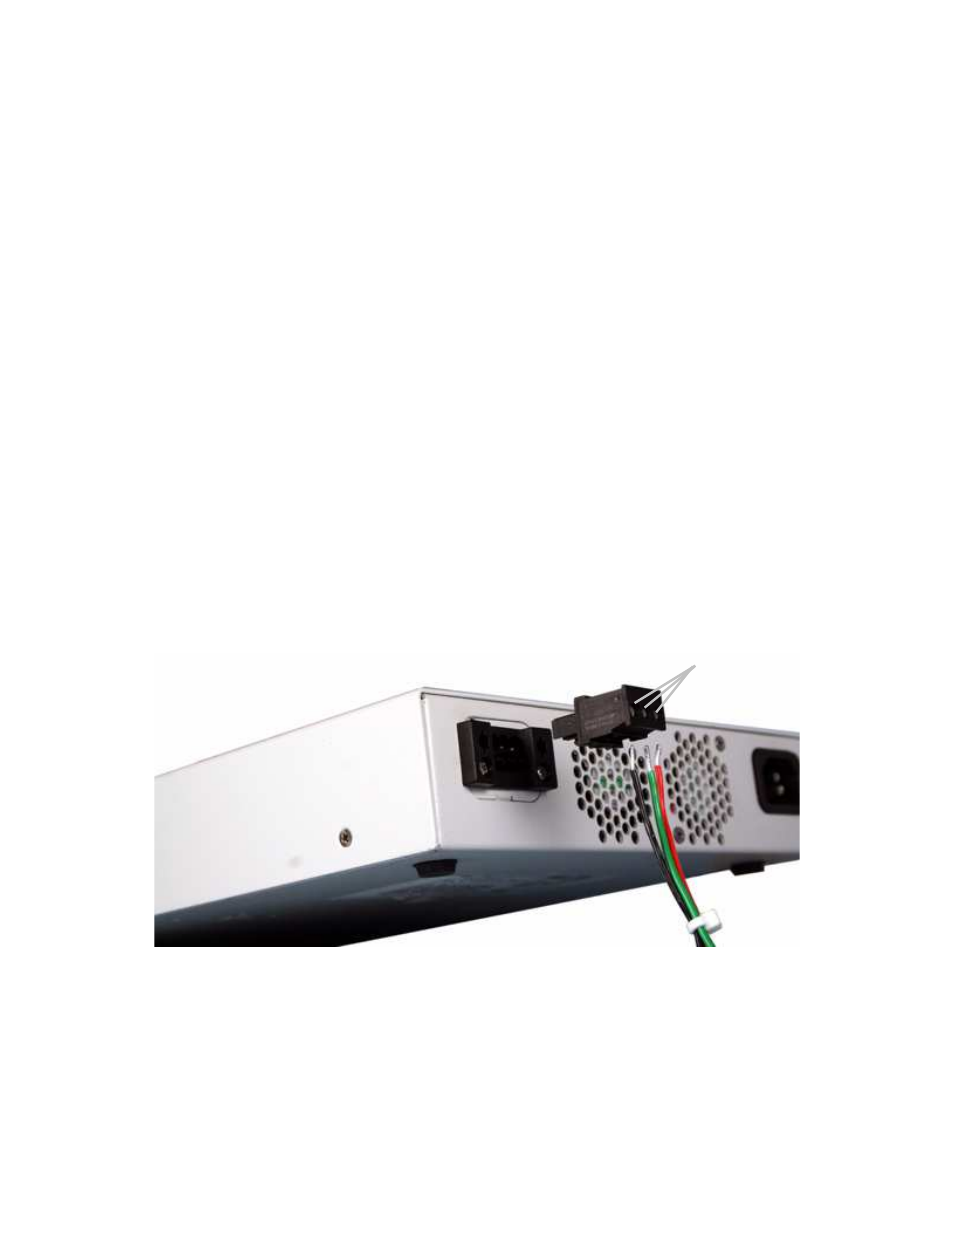 Canoga Perkins 9145emp Network Interface Device Hardware User Manual 110 Wiring Block Installation Page 37 50